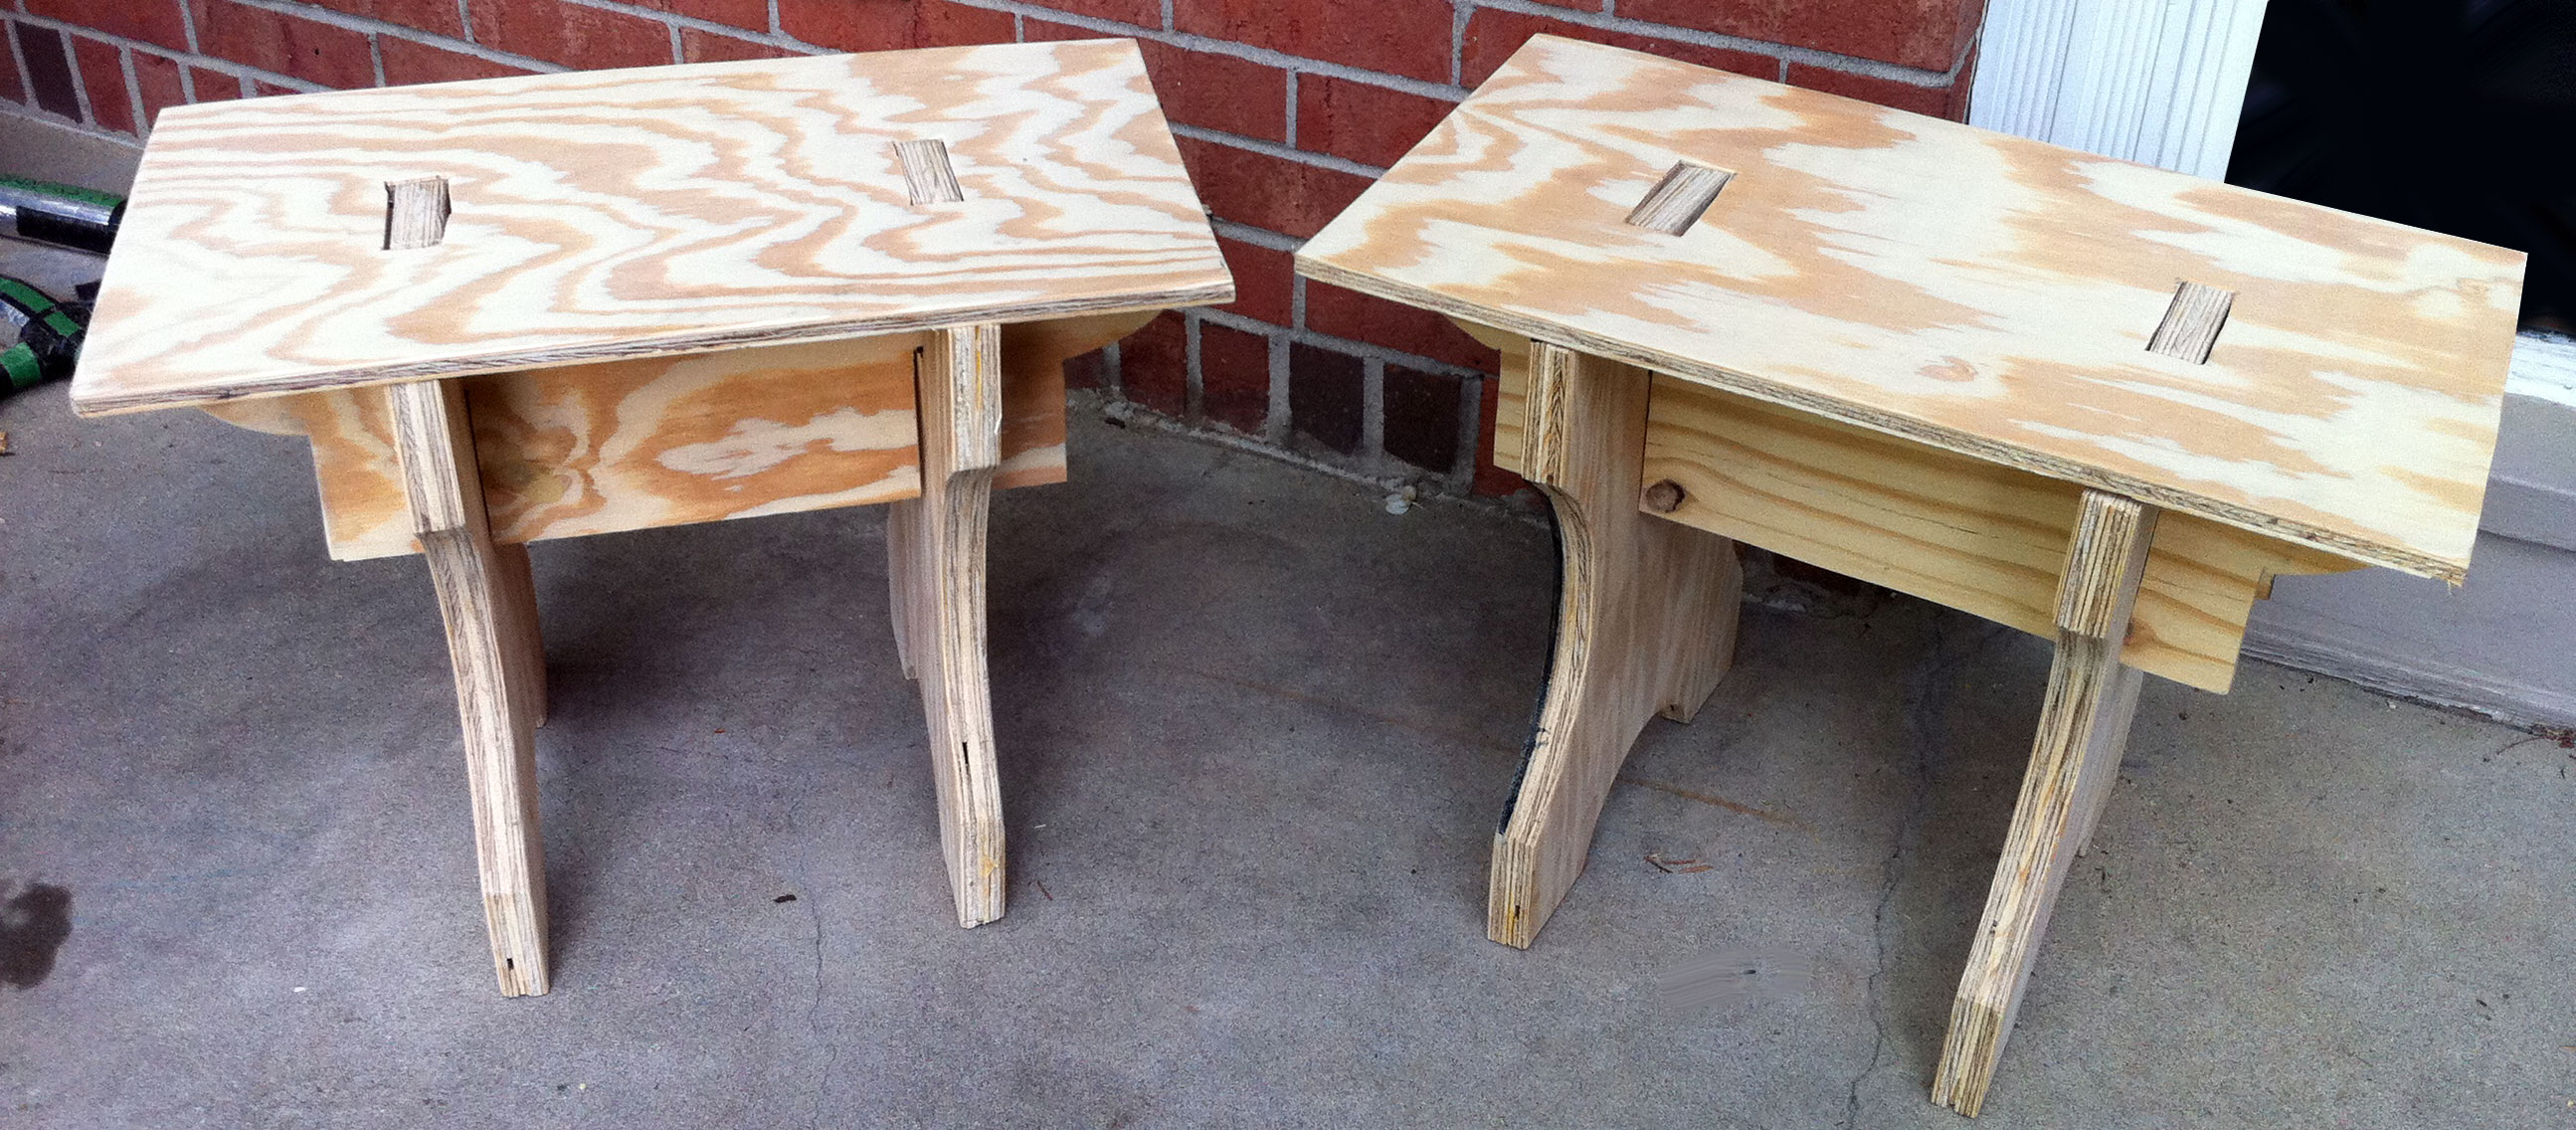 Camp Furniture For Pennsic War Woodworking Bench Table Honor Before Victory